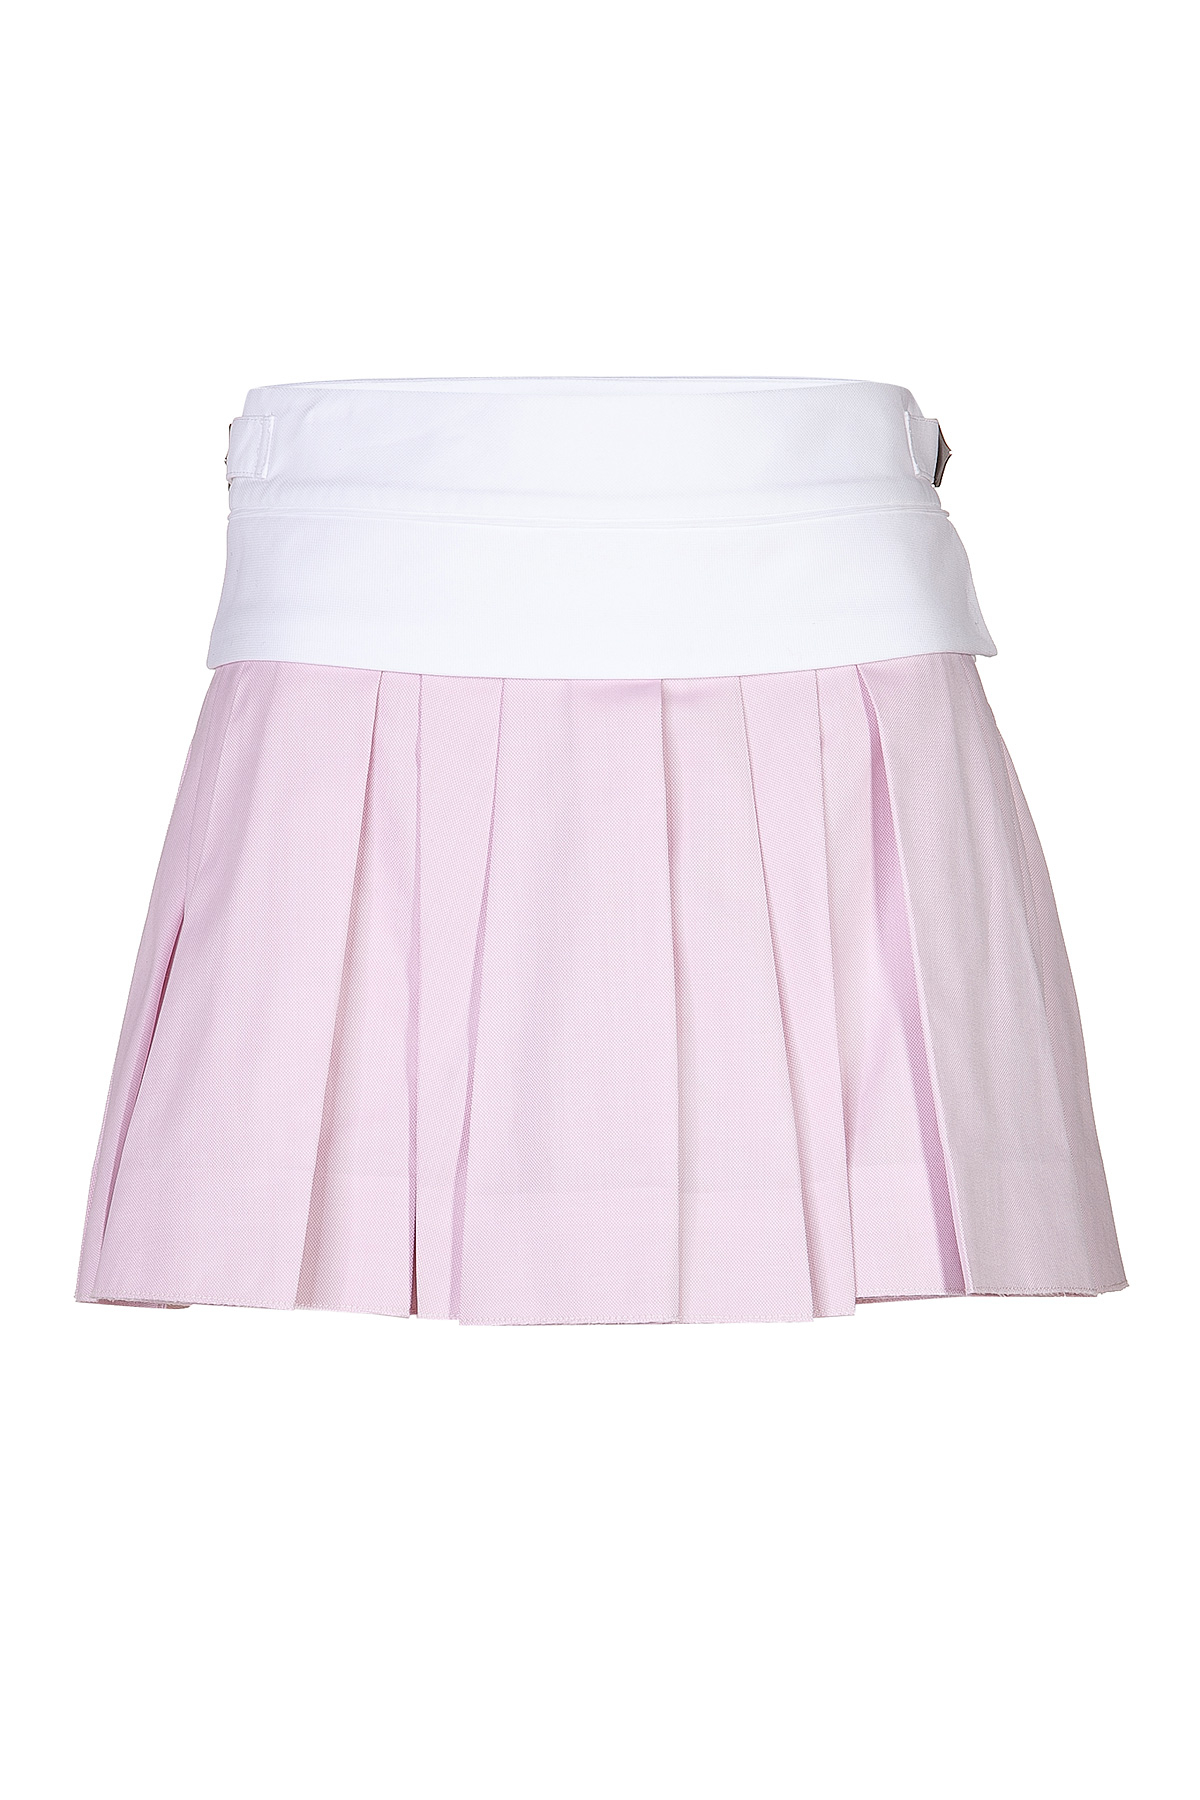 wang pleated mini skirt in cotton in pink